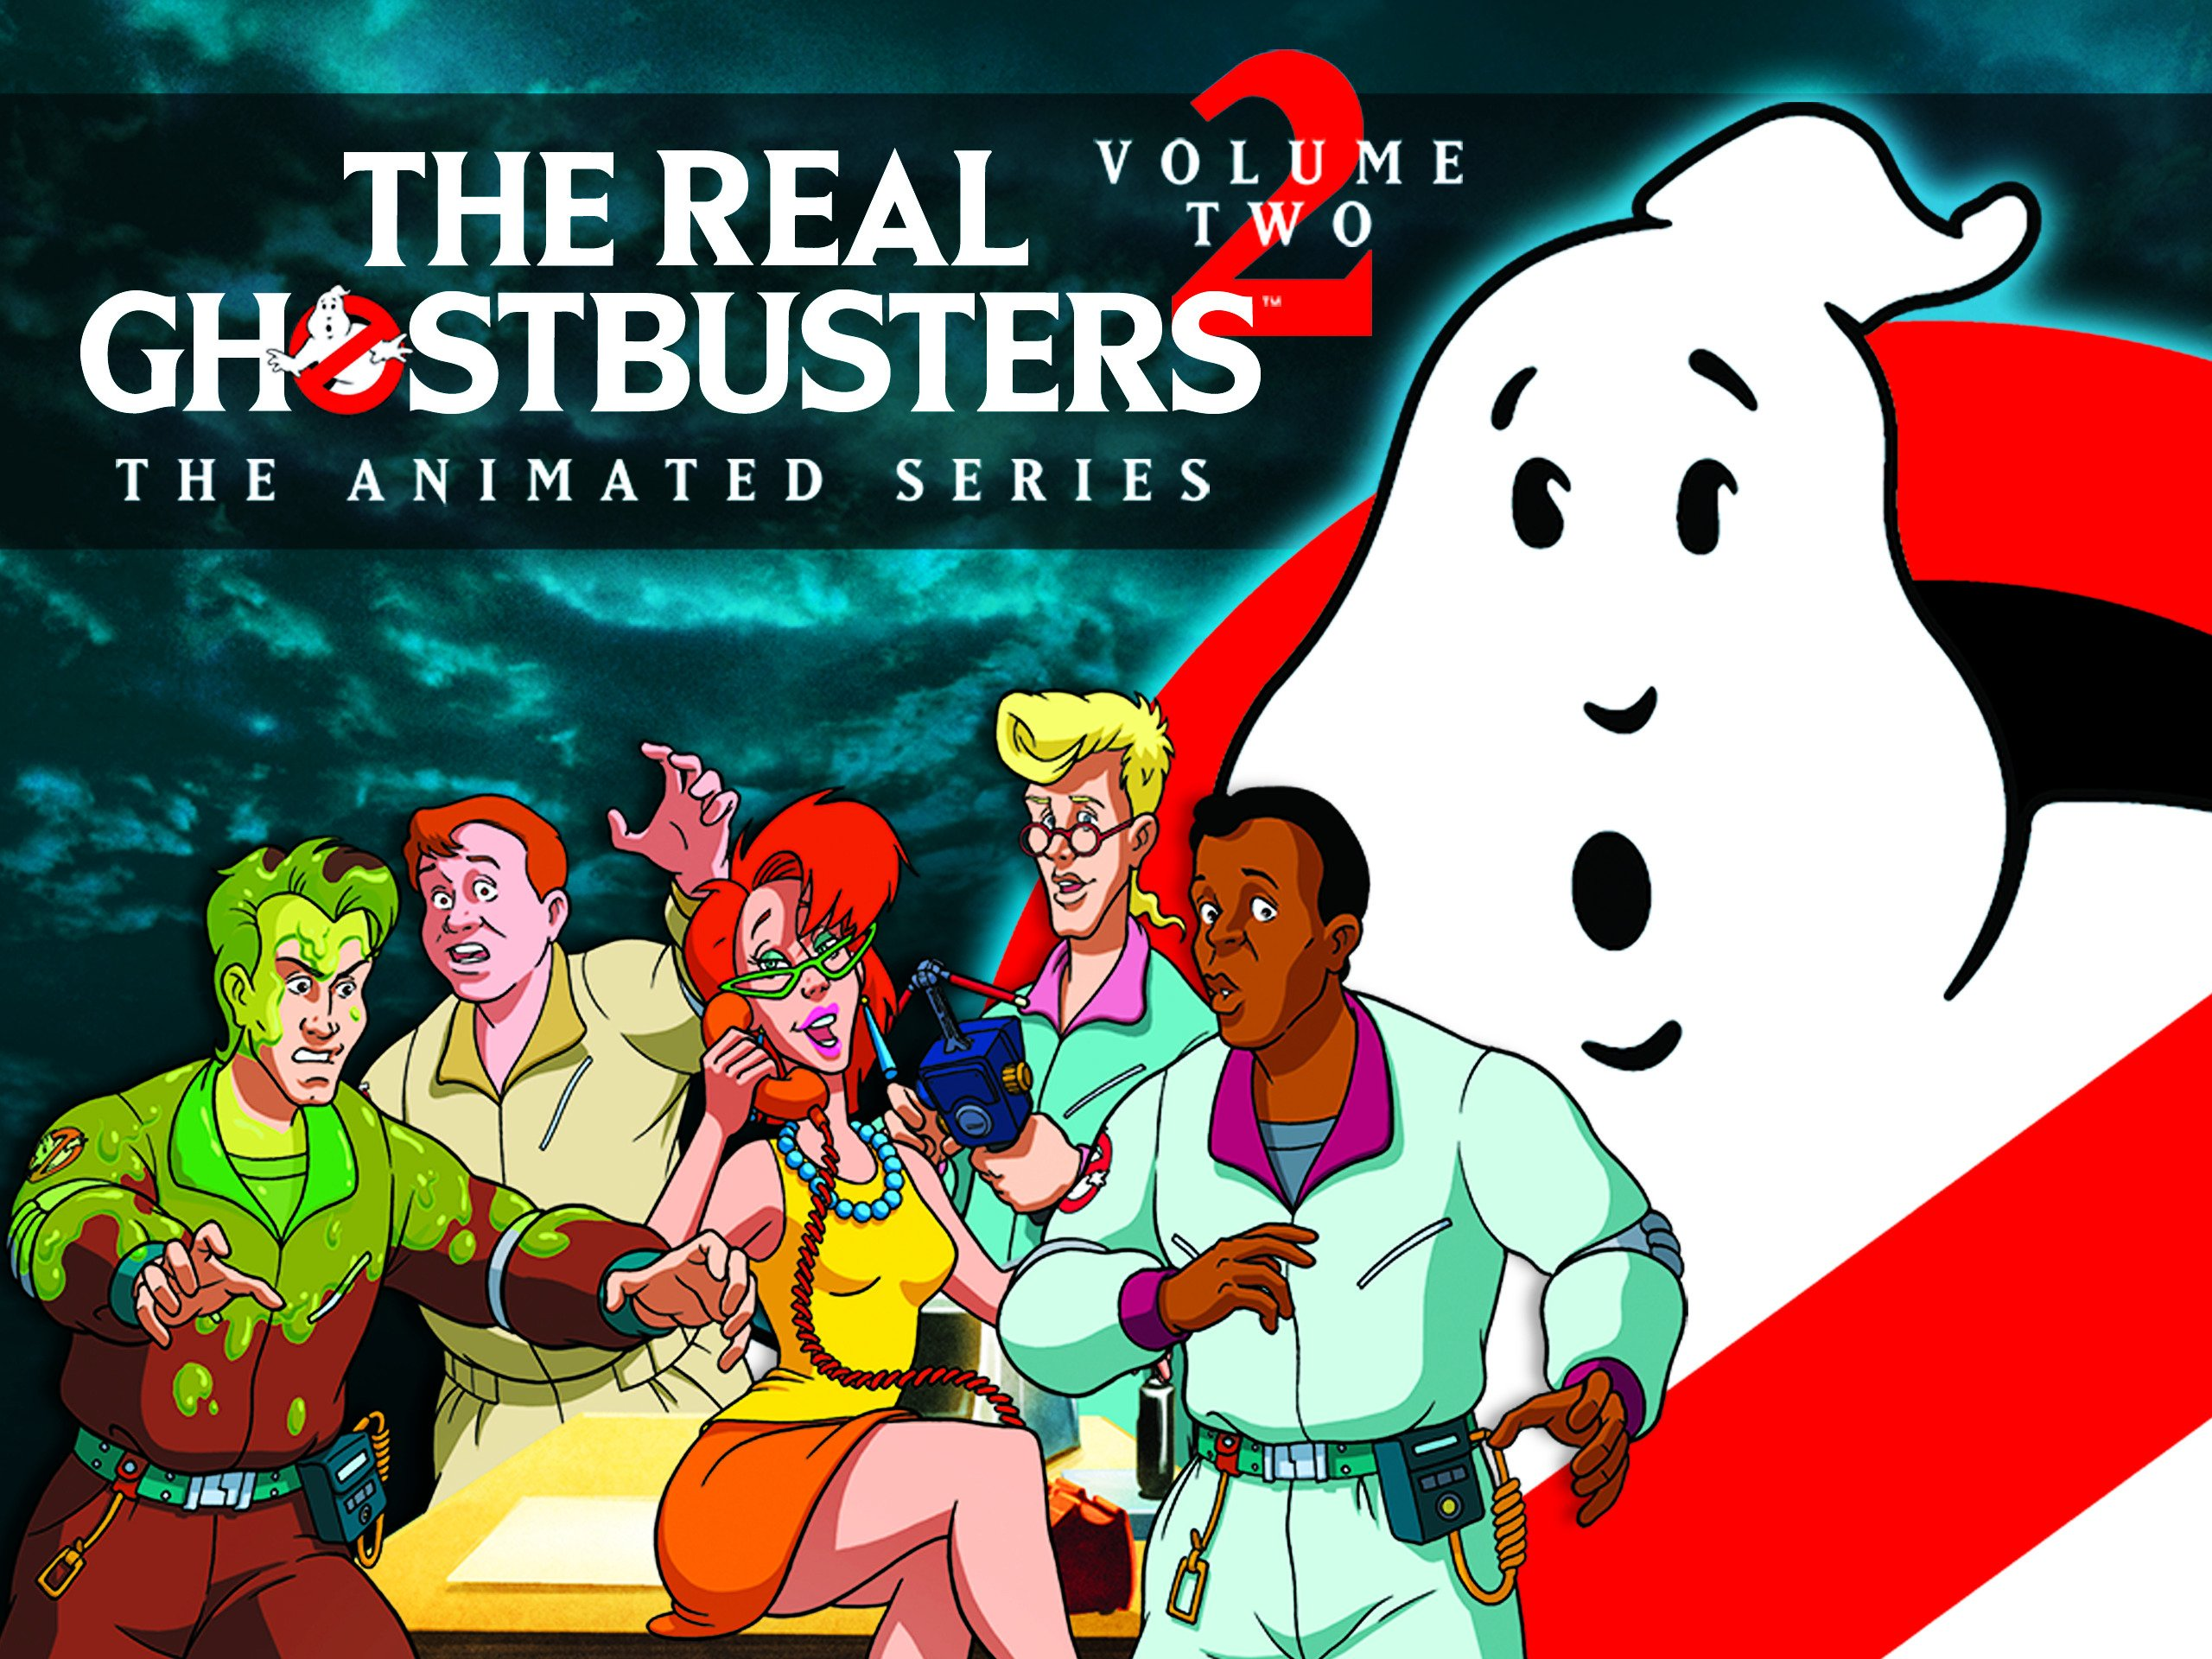 Watch The Real Ghostbusters Volume 2 Prime Video